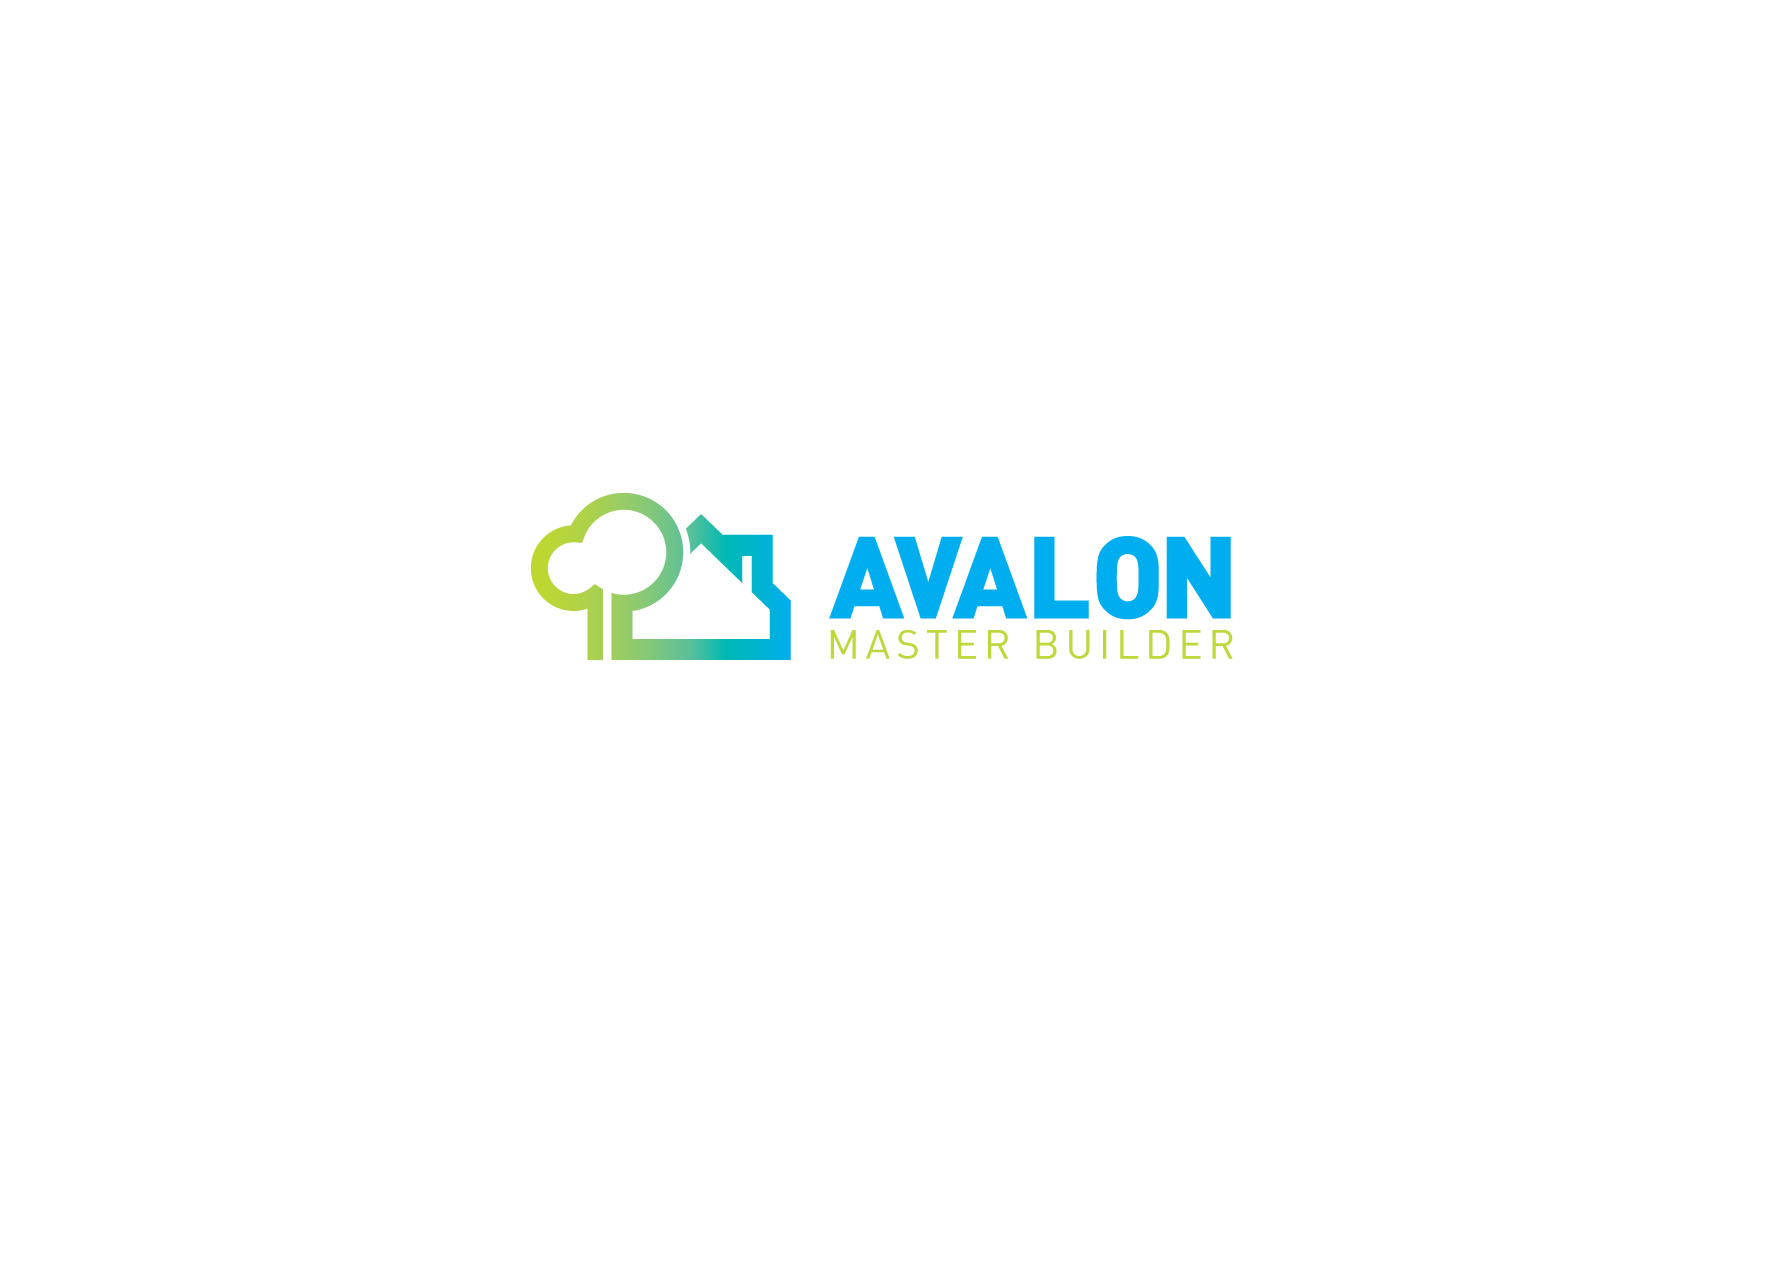 Logo Design by tanganpanas - Entry No. 46 in the Logo Design Contest Avalon Master Builder Logo Design.